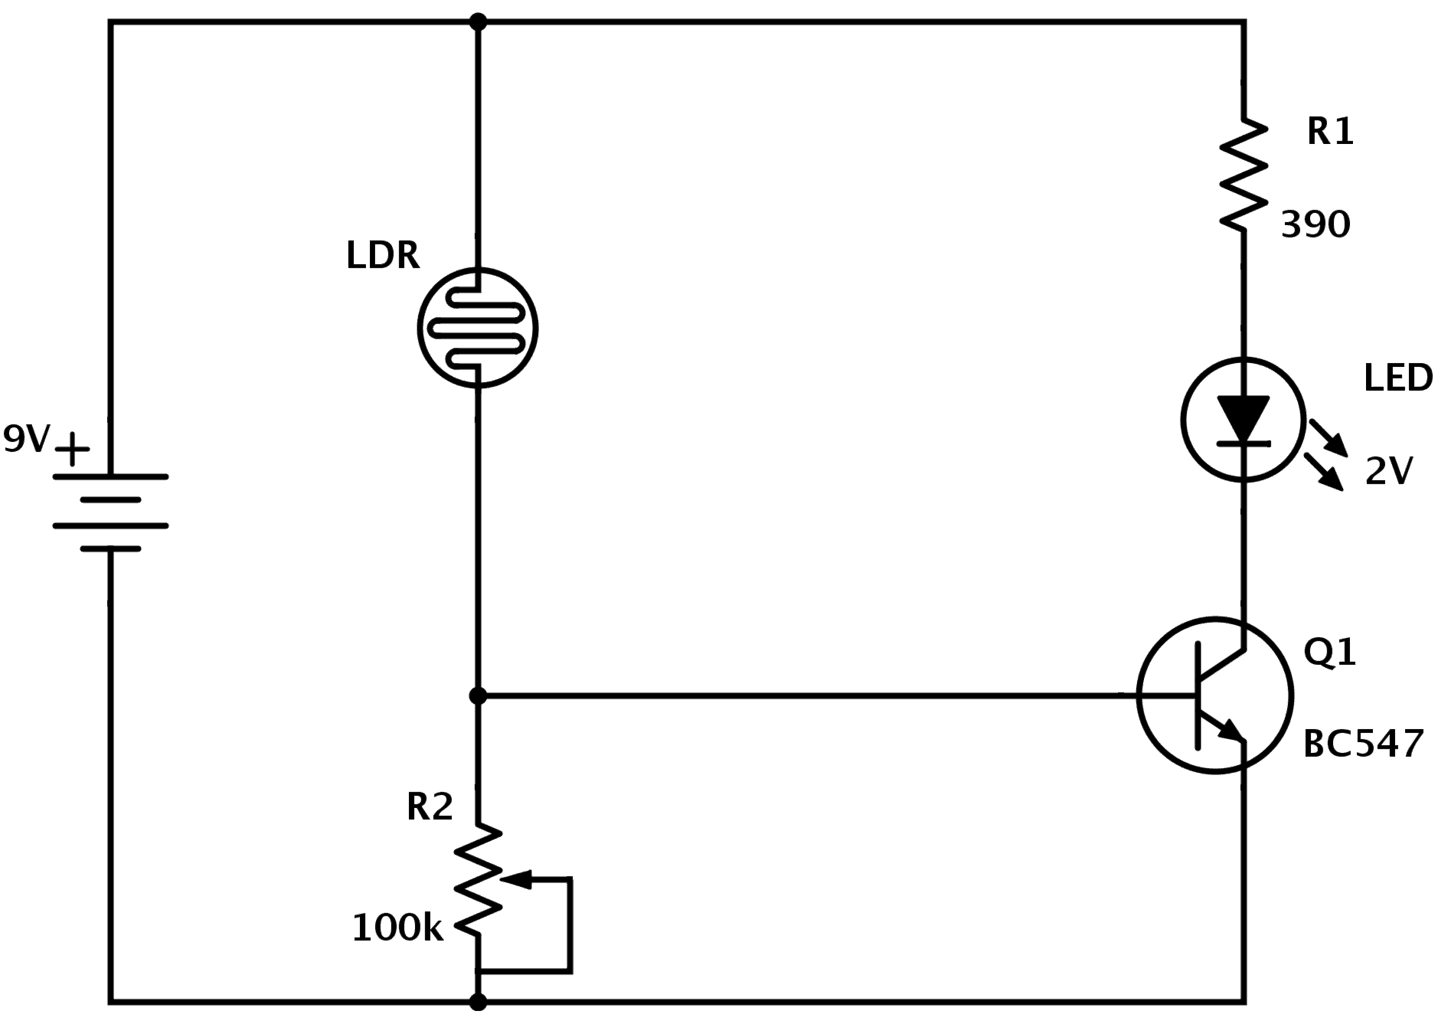 building wiring schematic diagram